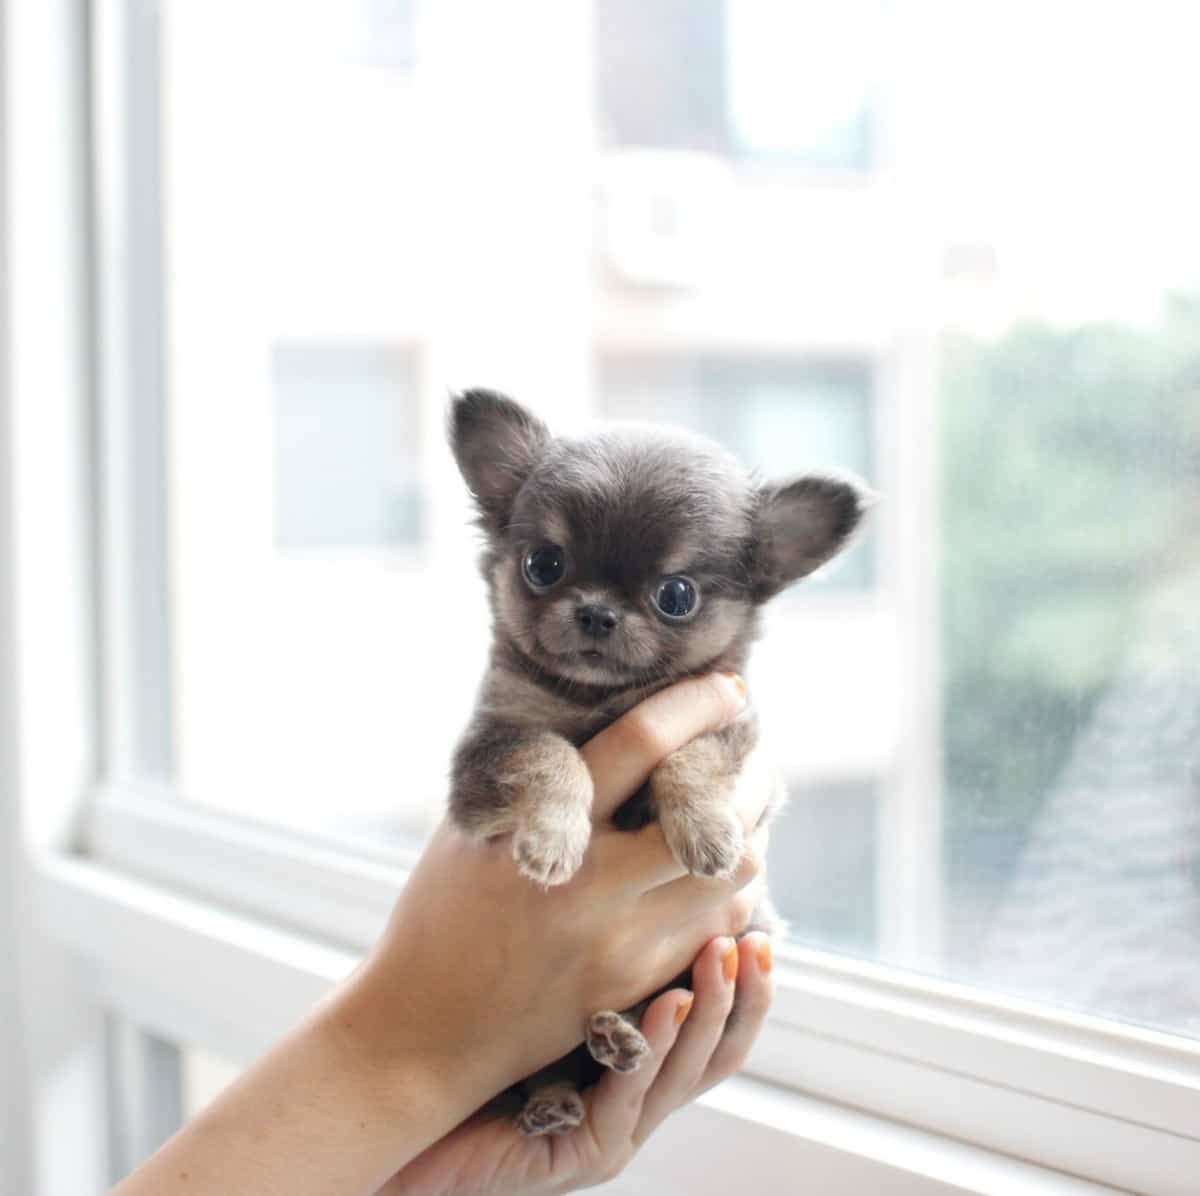 Adorable Pebbles Miss Sold Iowa Lil Toadorable Lil Miss Pebbles Sold To Iowa Adorable Lil Miss Pebbles Micr Teacup Chihuahua Chihuahua Teacup Dog Breeds